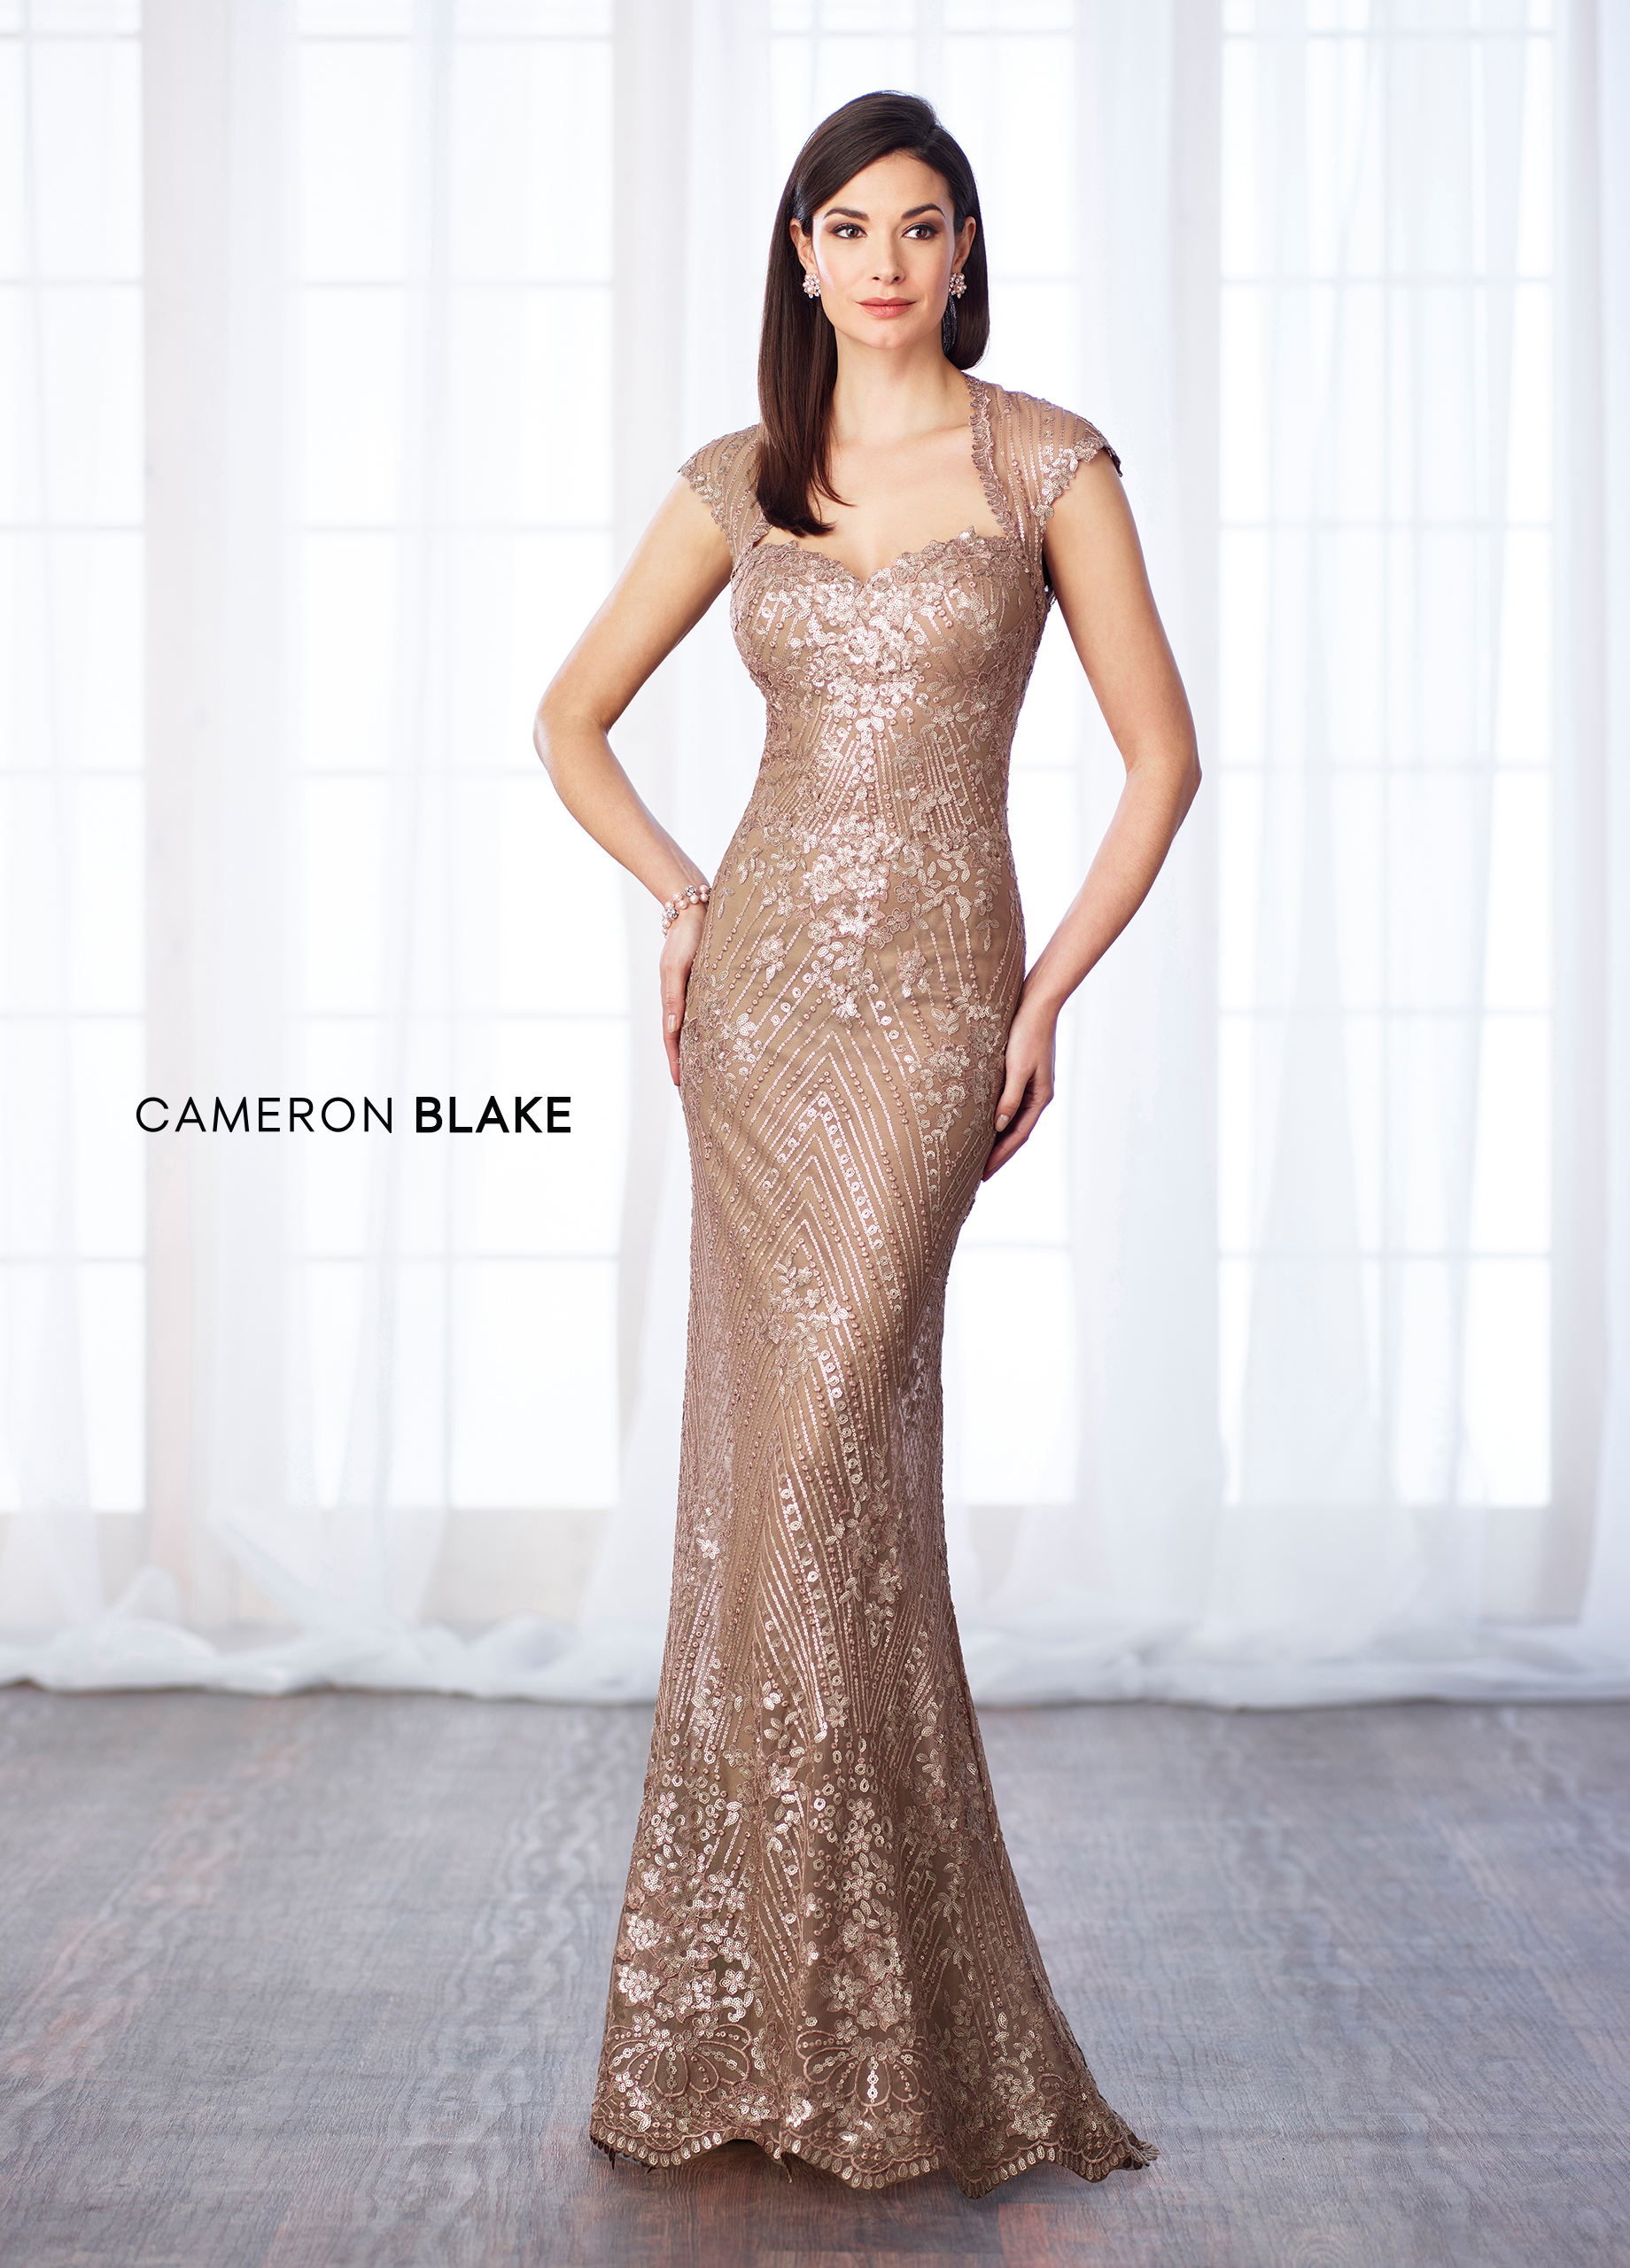 fd05dae53d4e Sequin lace and chiffon fit and flare gown with cap sleeves, Queen Anne  neckline, dropped waistline, keyhole back, scalloped hem.